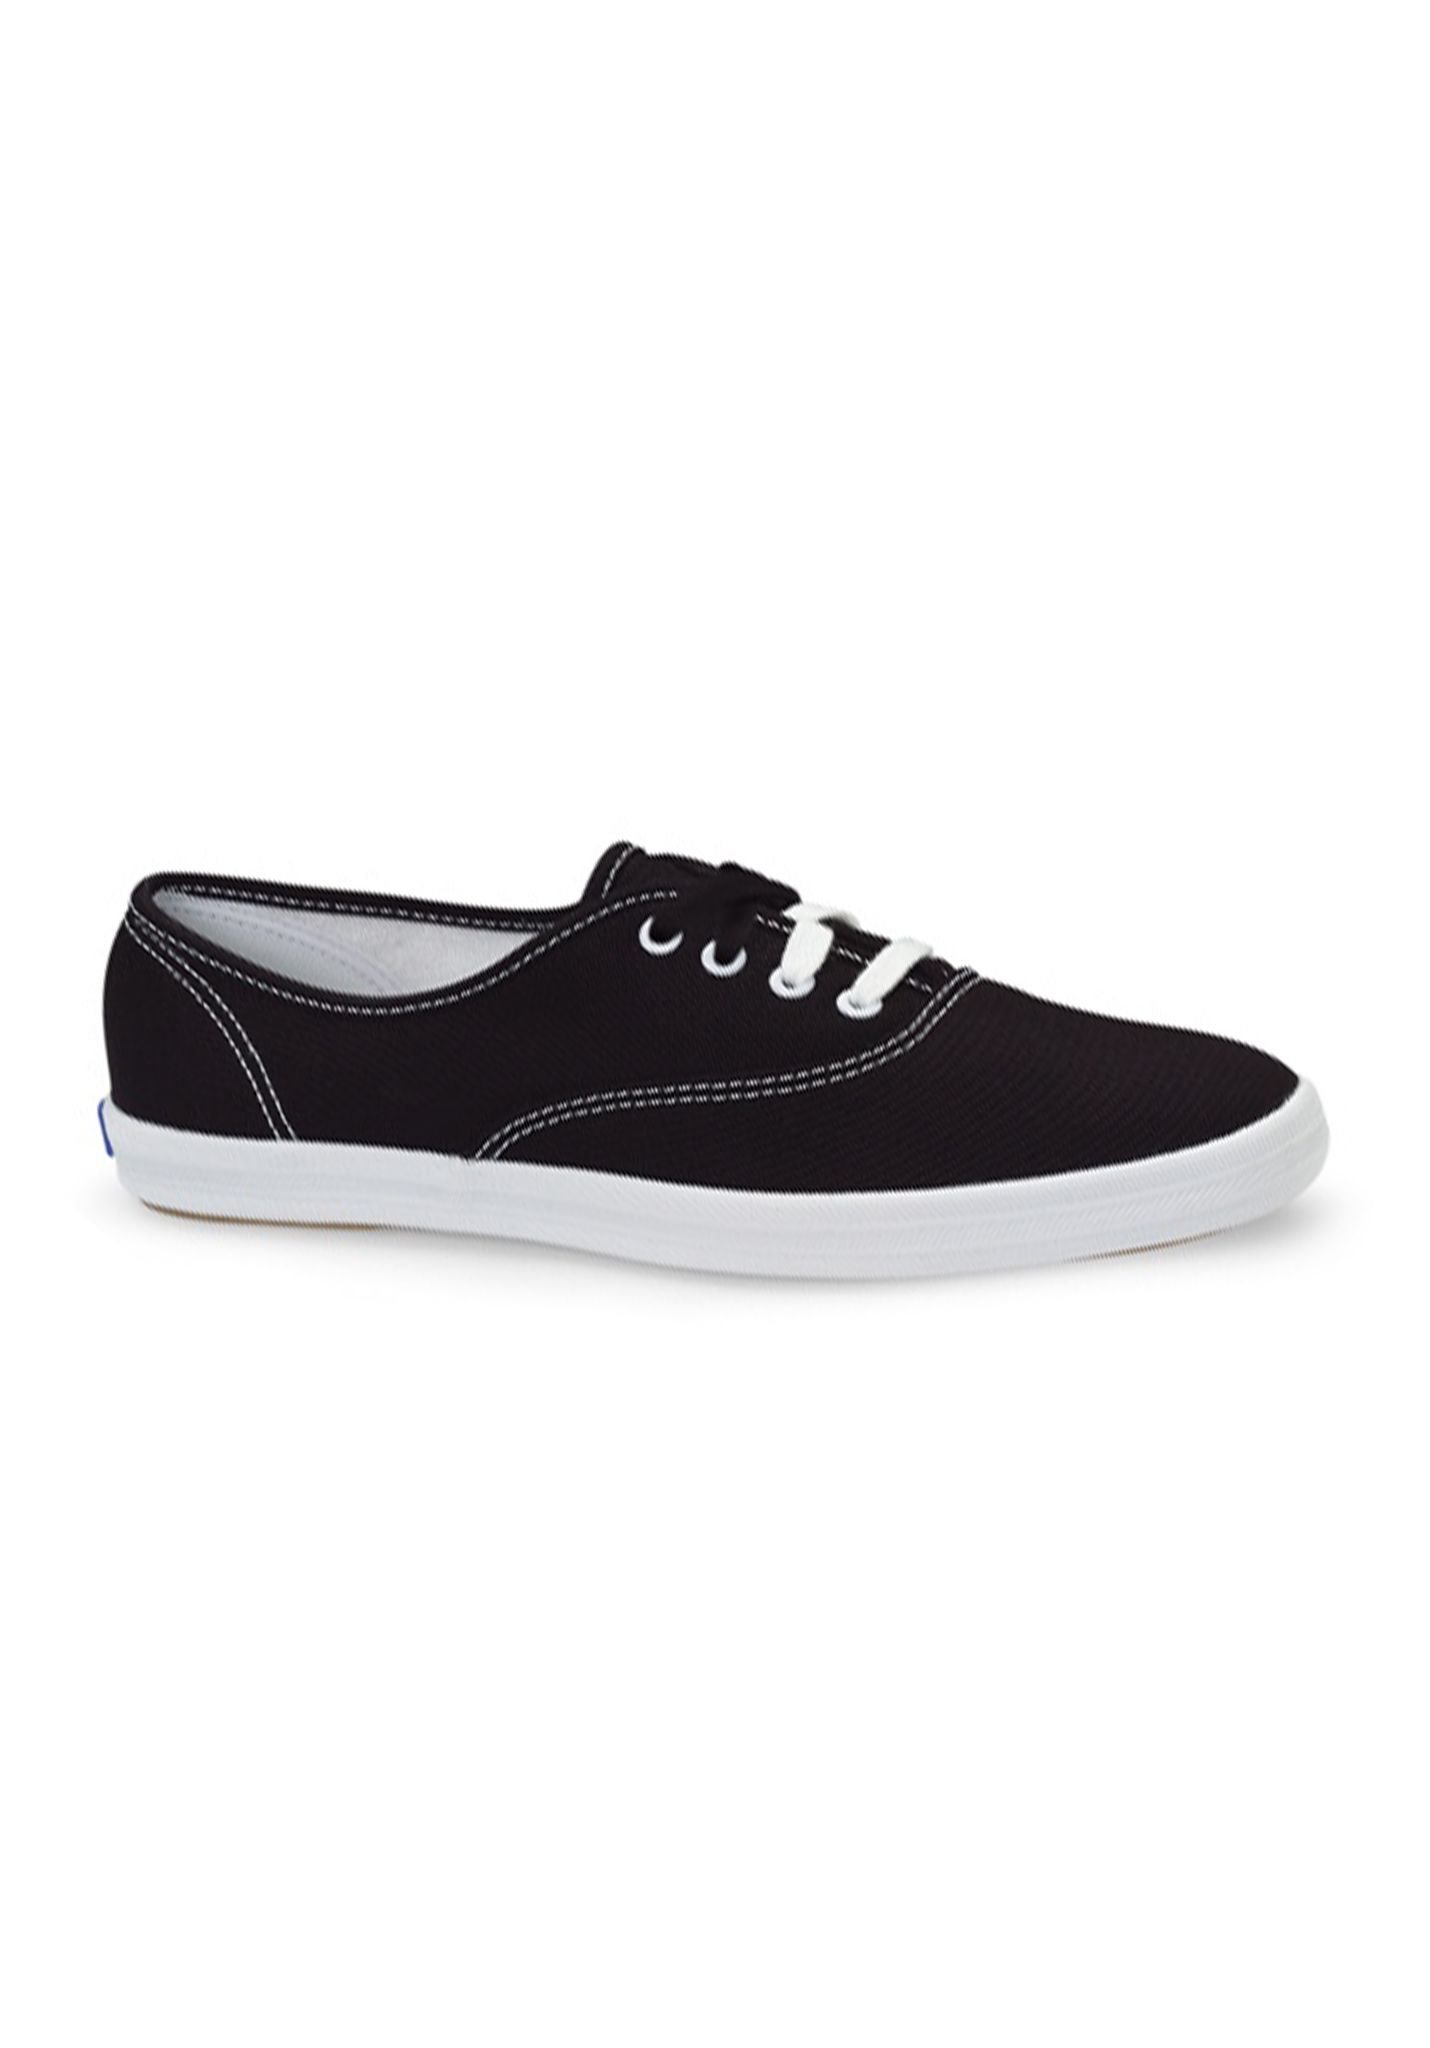 7a157813c788 Keds Champion CVO - Sneakers for Women - Black - Planet Sports